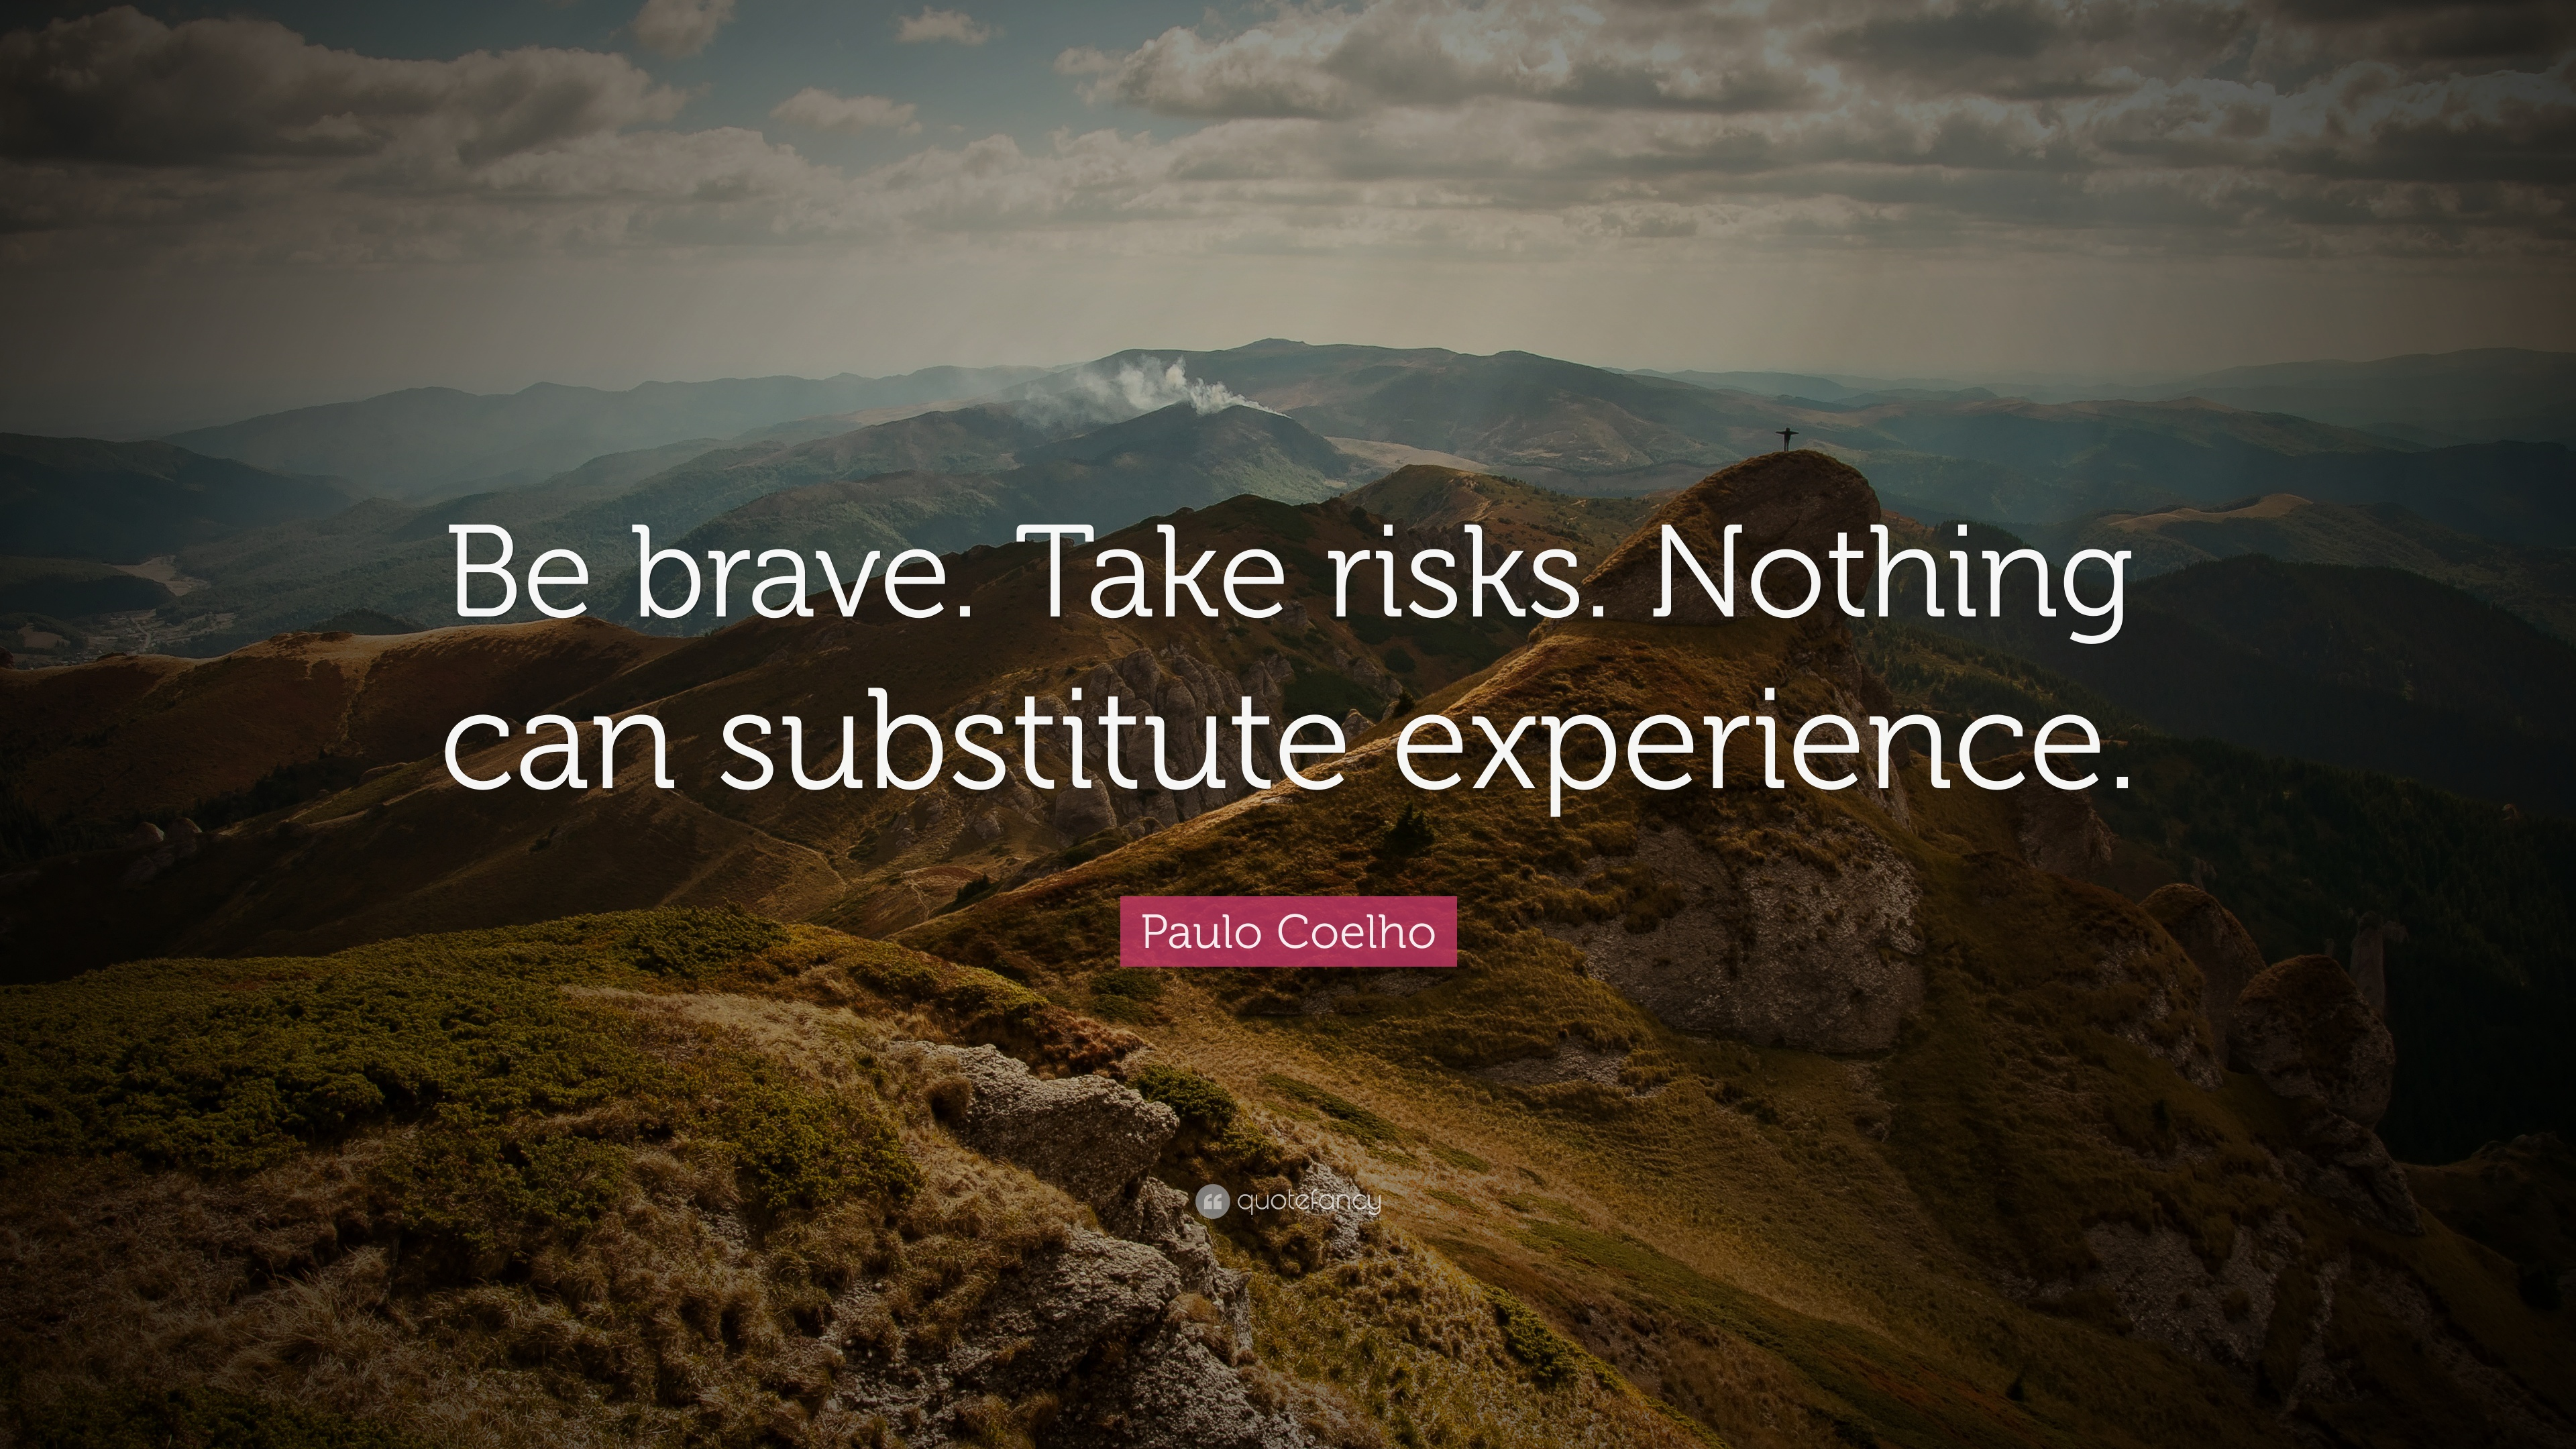 Kết quả hình ảnh cho Be brave. Take risks. Nothing can substitute experience